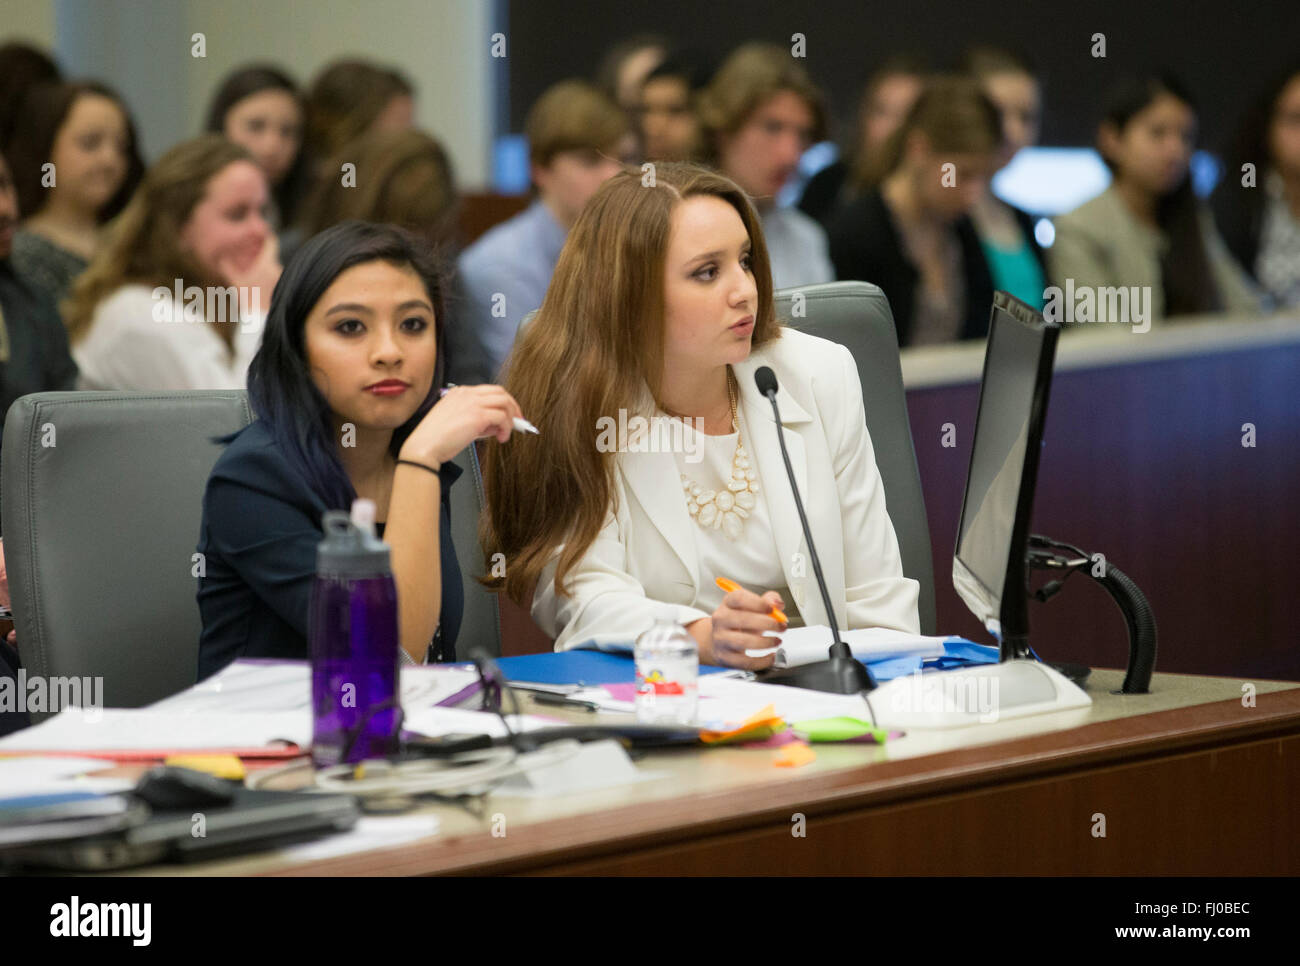 Teen girl posing as defense attorney speaks during mock trial for high school students in Texas courtroom - Stock Image